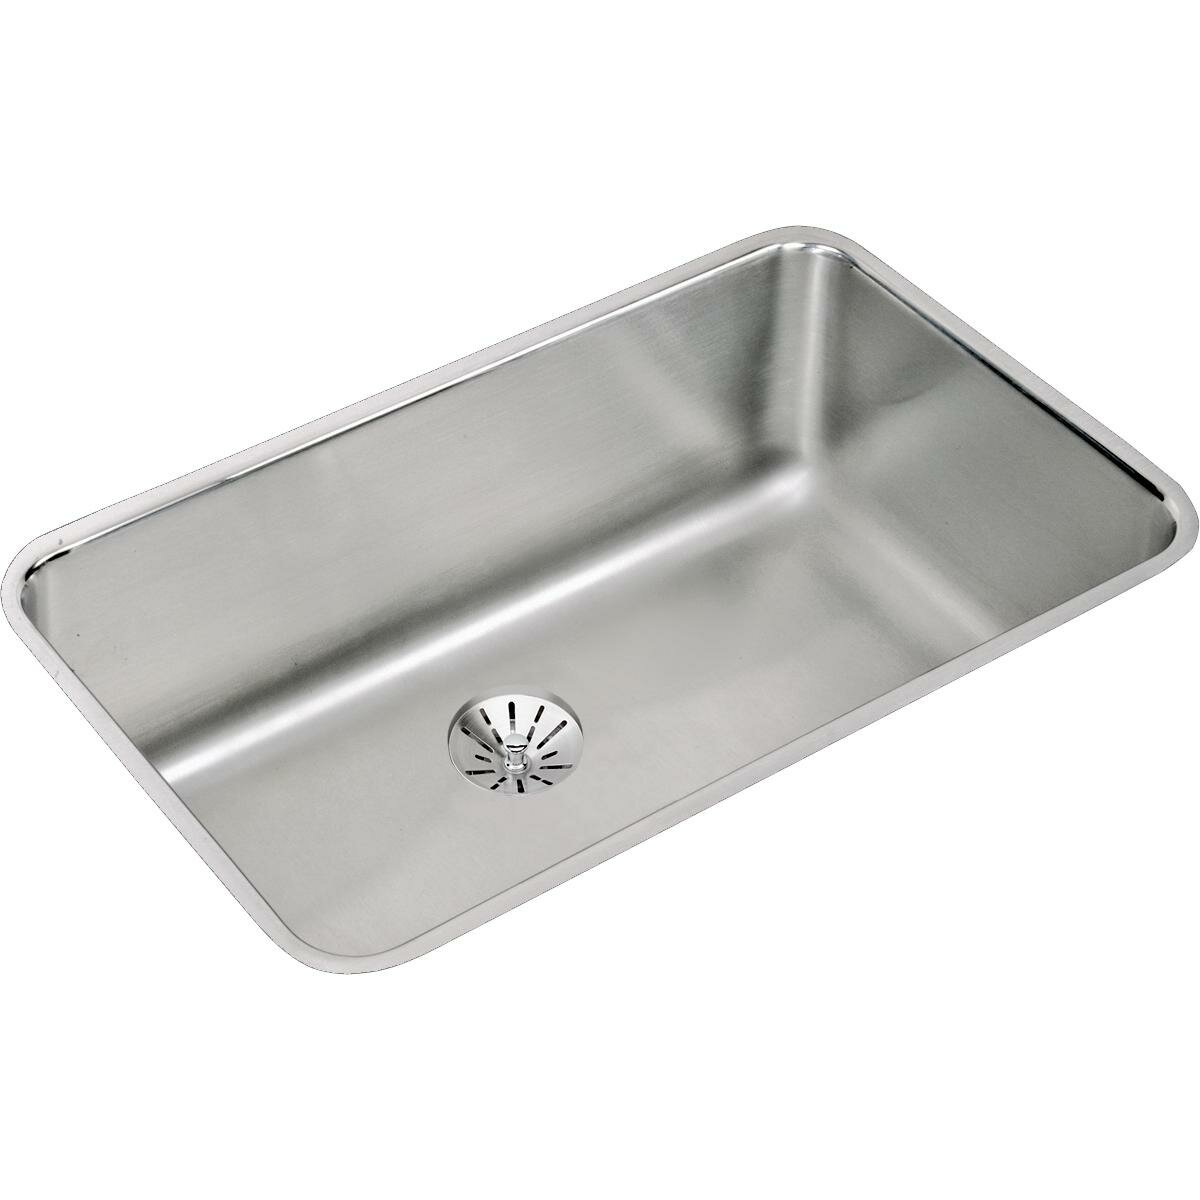 lustertone 305 x 185 undermount single bowl kitchen sink with perfect drain - White Single Basin Kitchen Sink